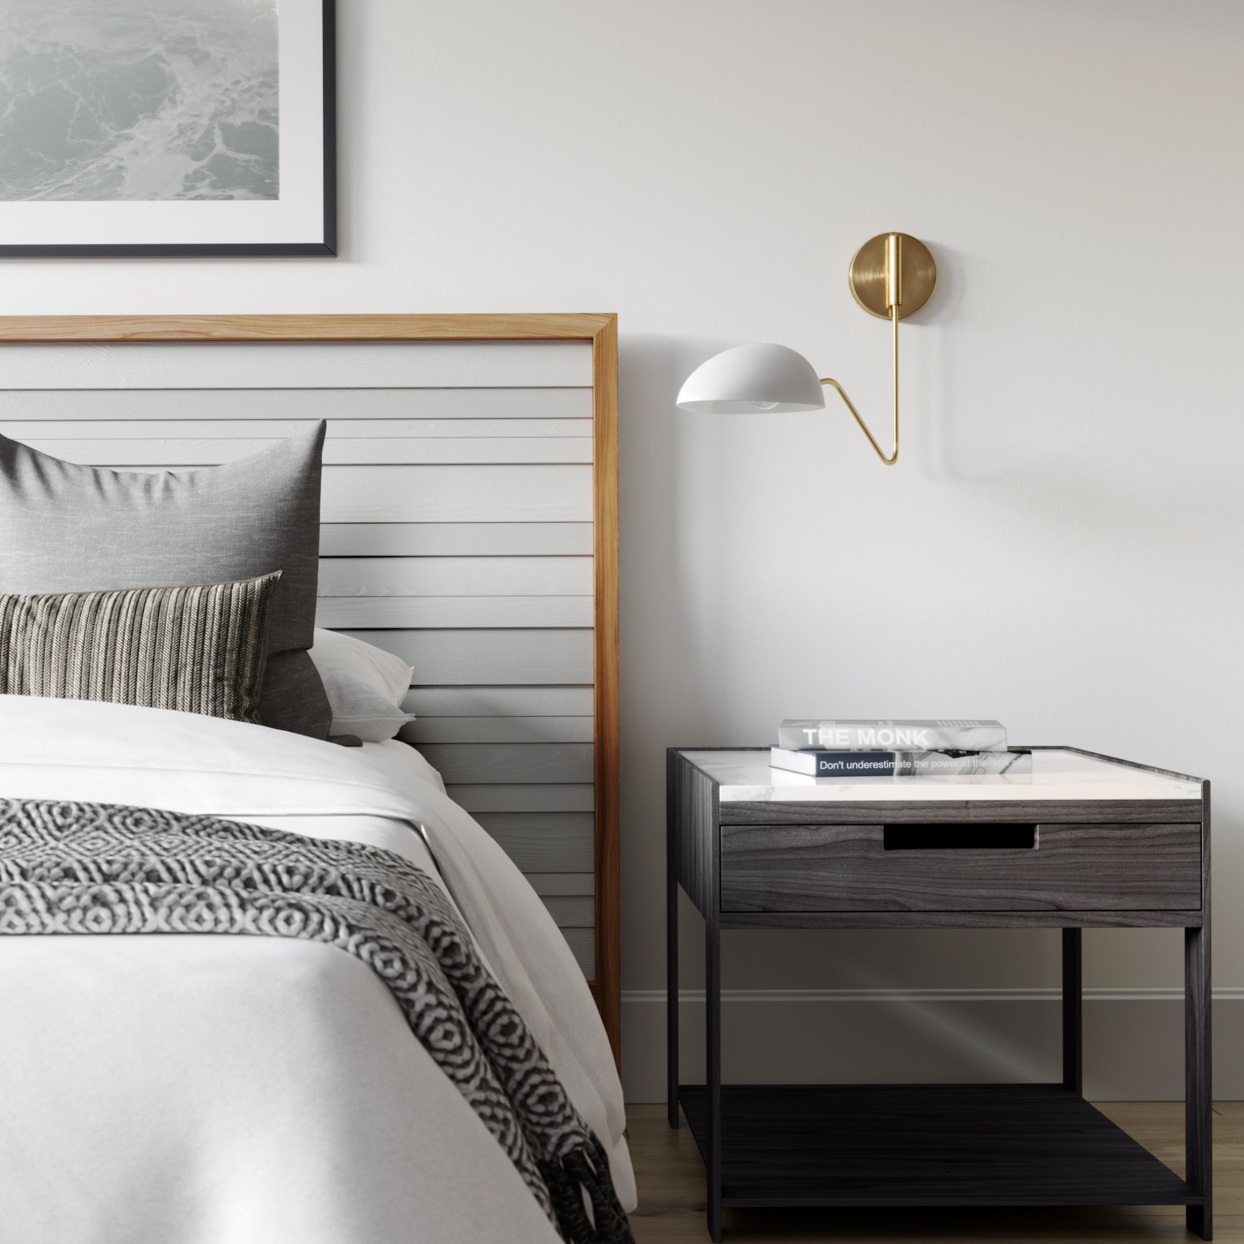 bedroom nightstand with light on wall